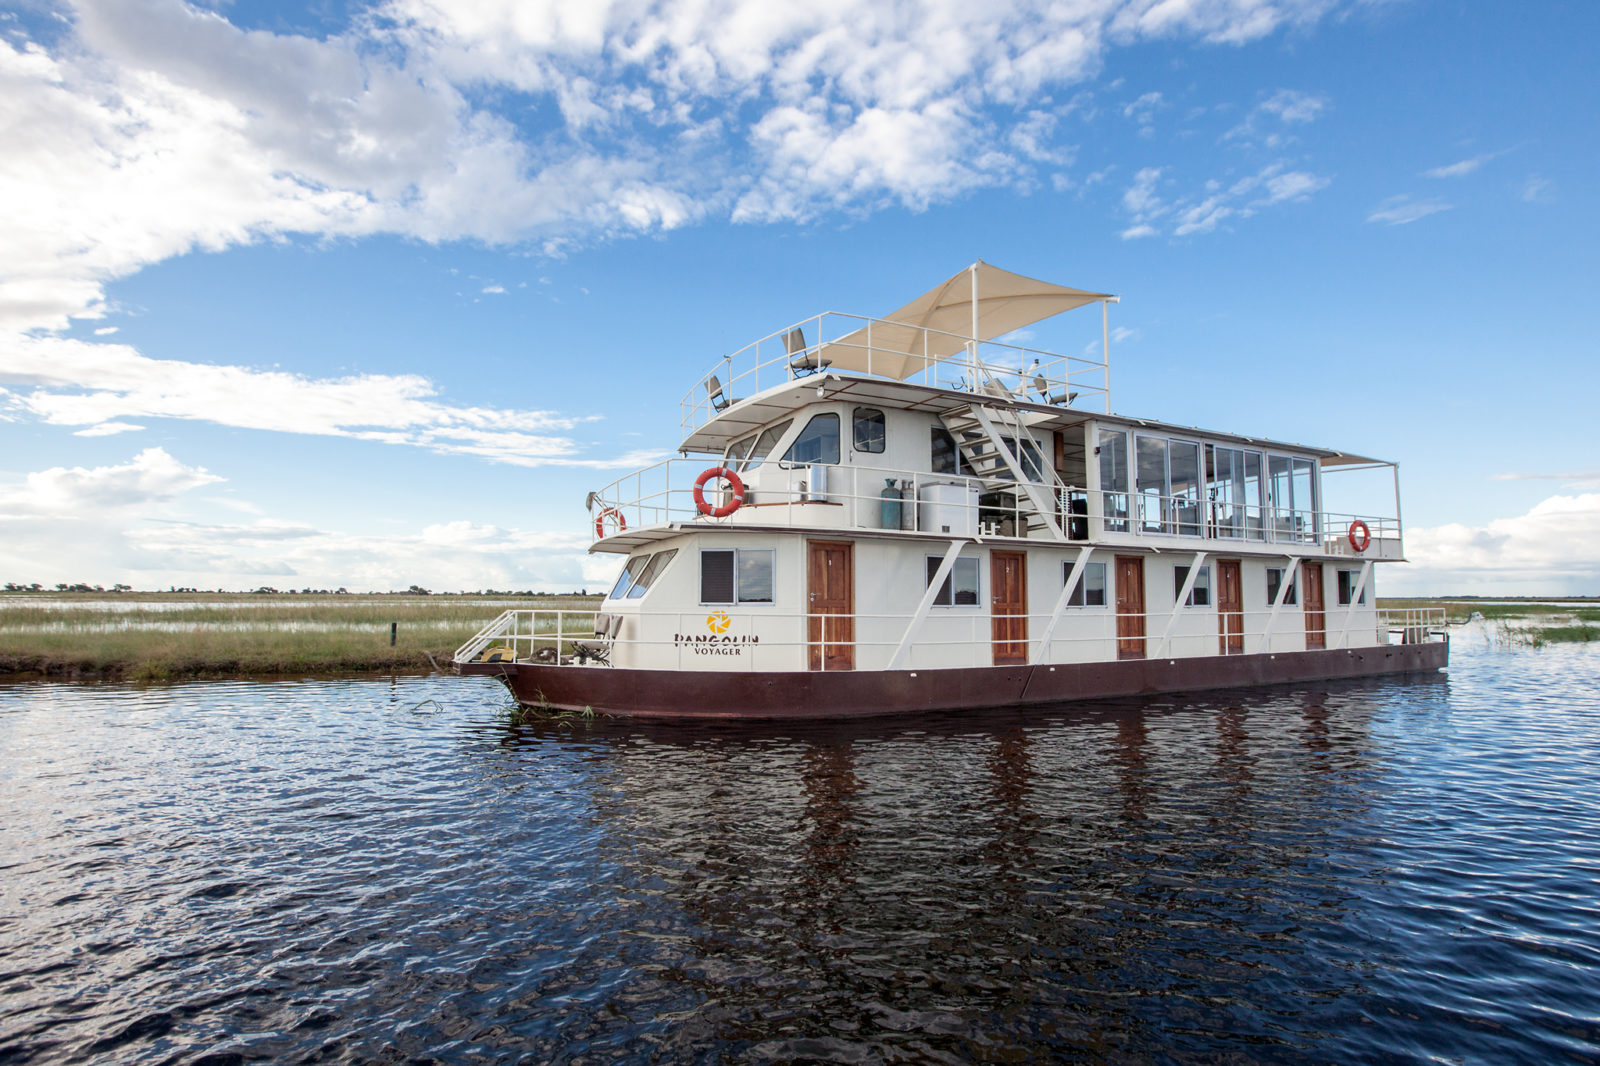 Pangolin Voyager houseboat on the Chobe river